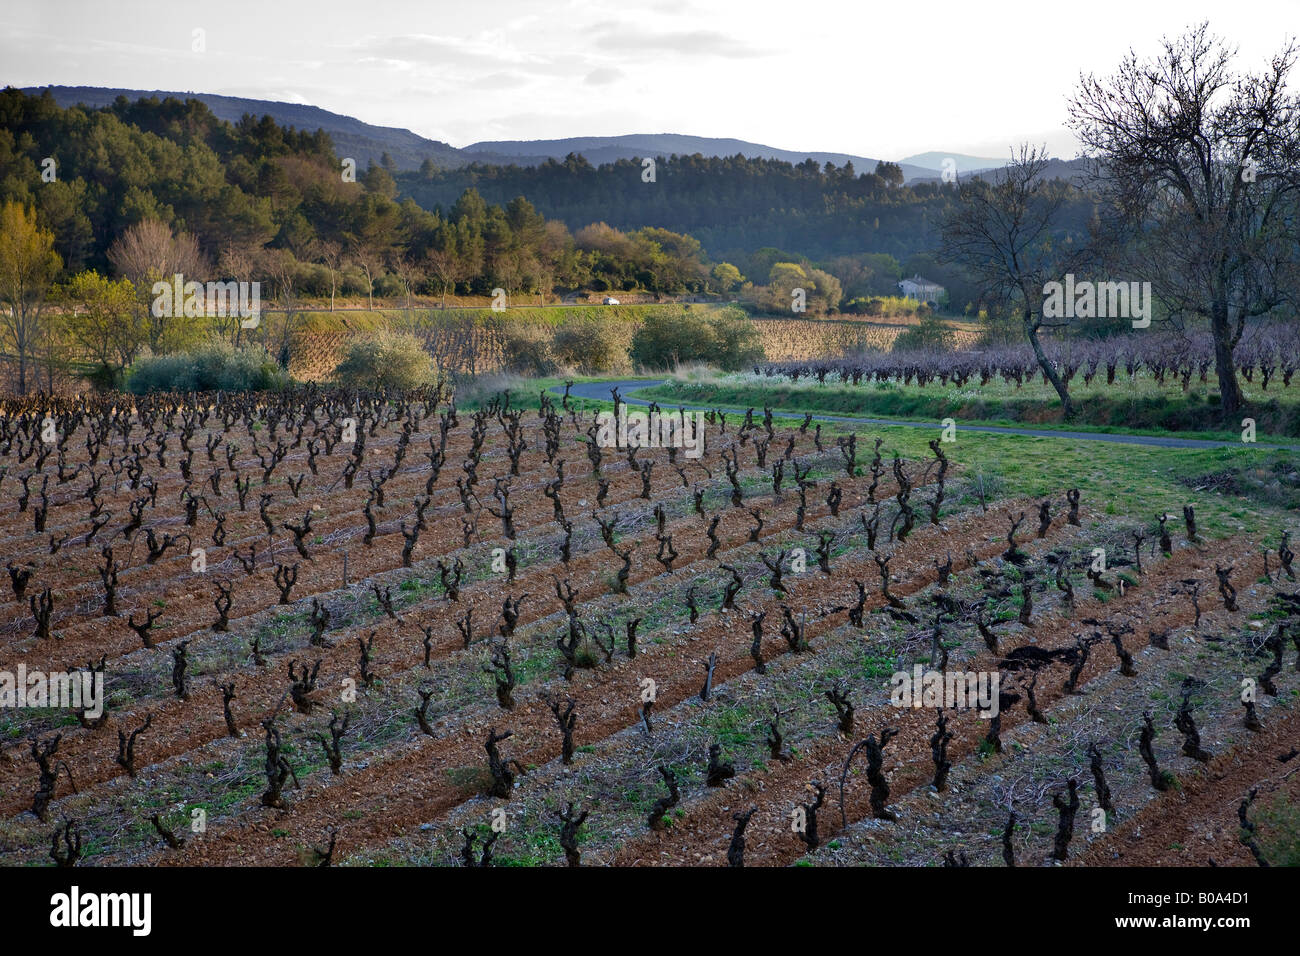 a field of rows of branching vines in a french vineyard - Stock Image